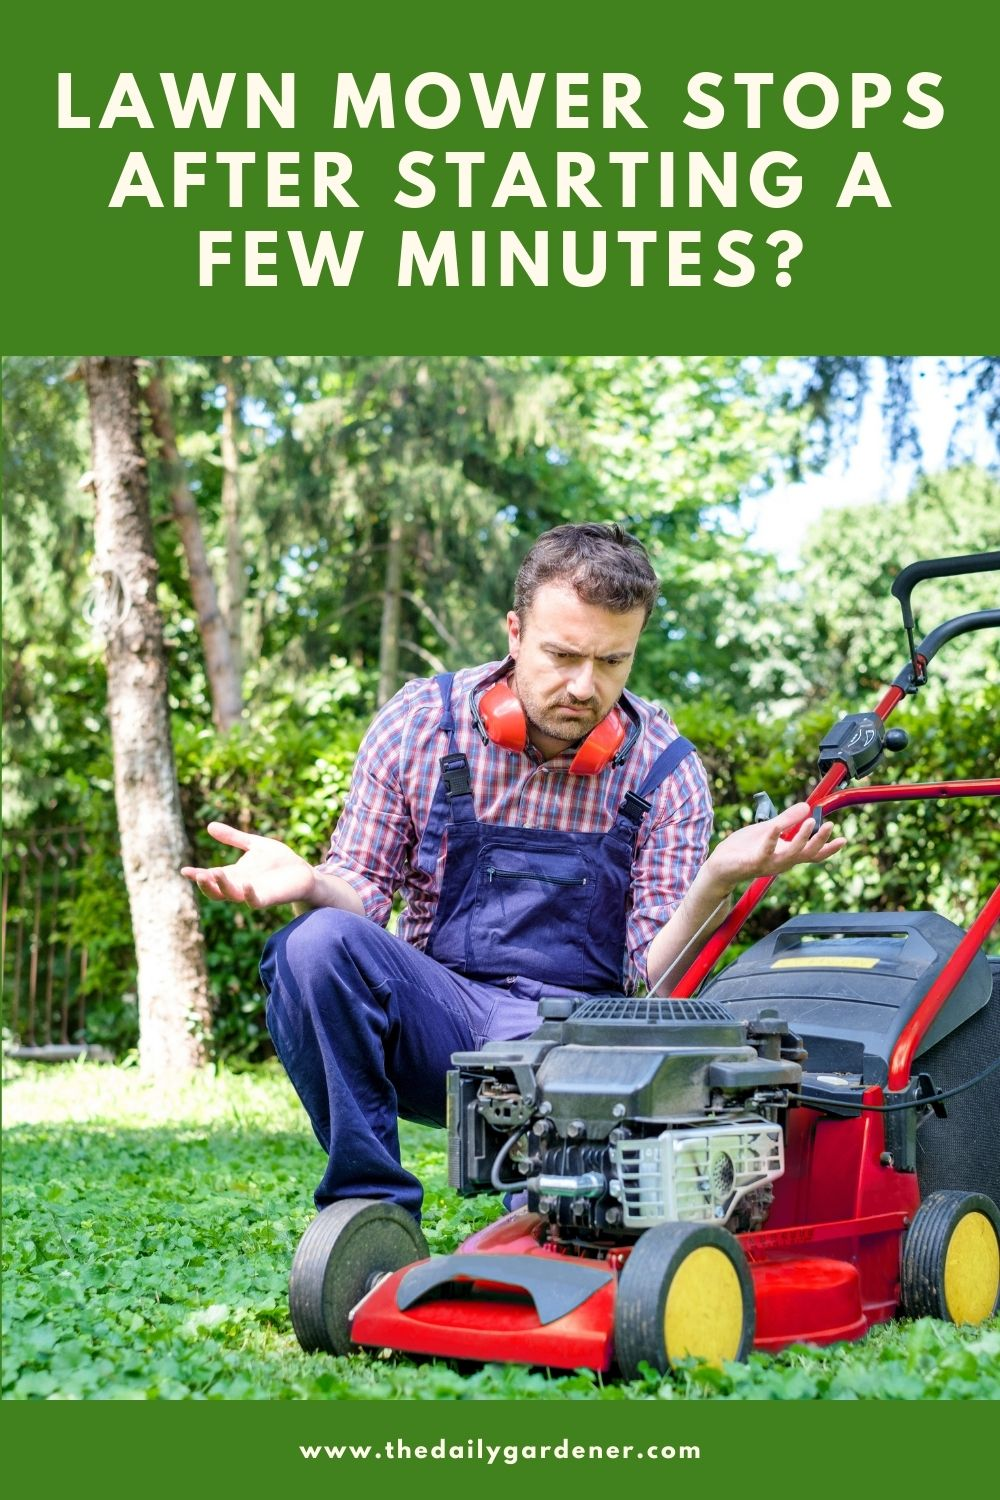 Lawn Mower Stops After Starting a Few Minutes 1